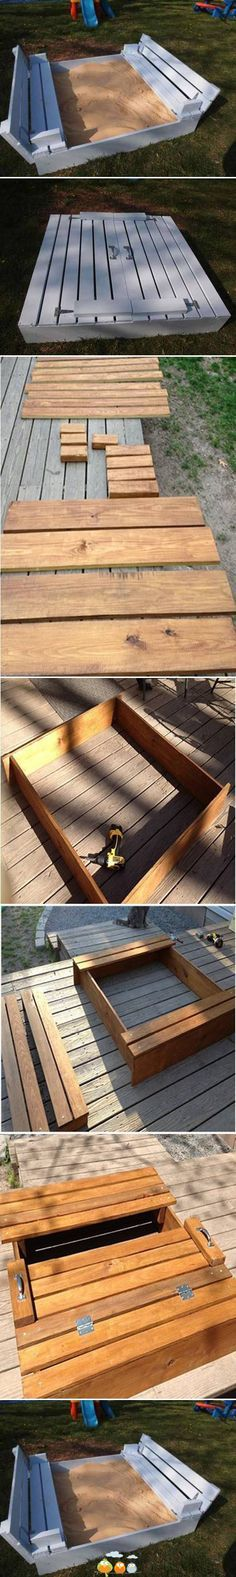 wood pallet sandbox, with bench seats that unfold to cover the sandbox...